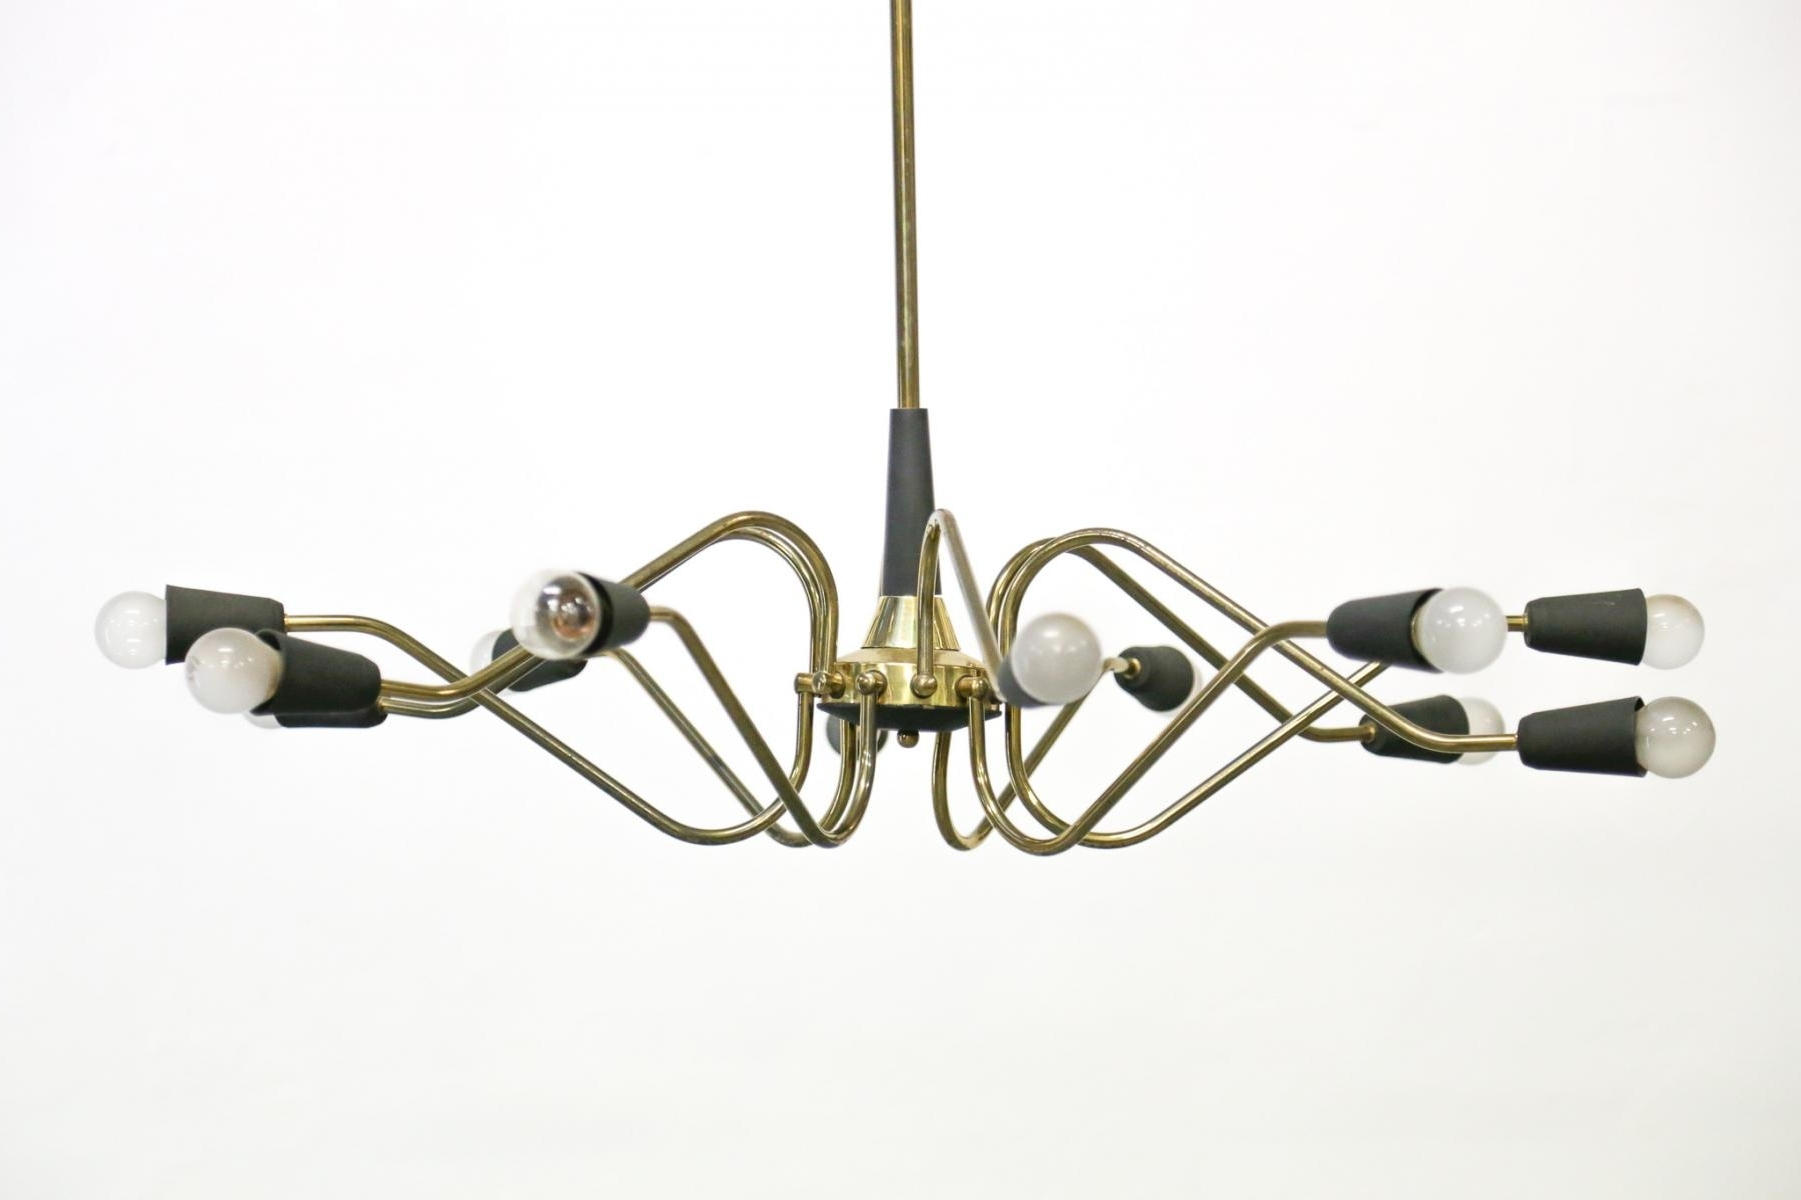 Most Current Vintage Italian Chandelier From Stilnovo For Sale At Pamono Regarding Vintage Italian Chandeliers (View 9 of 20)